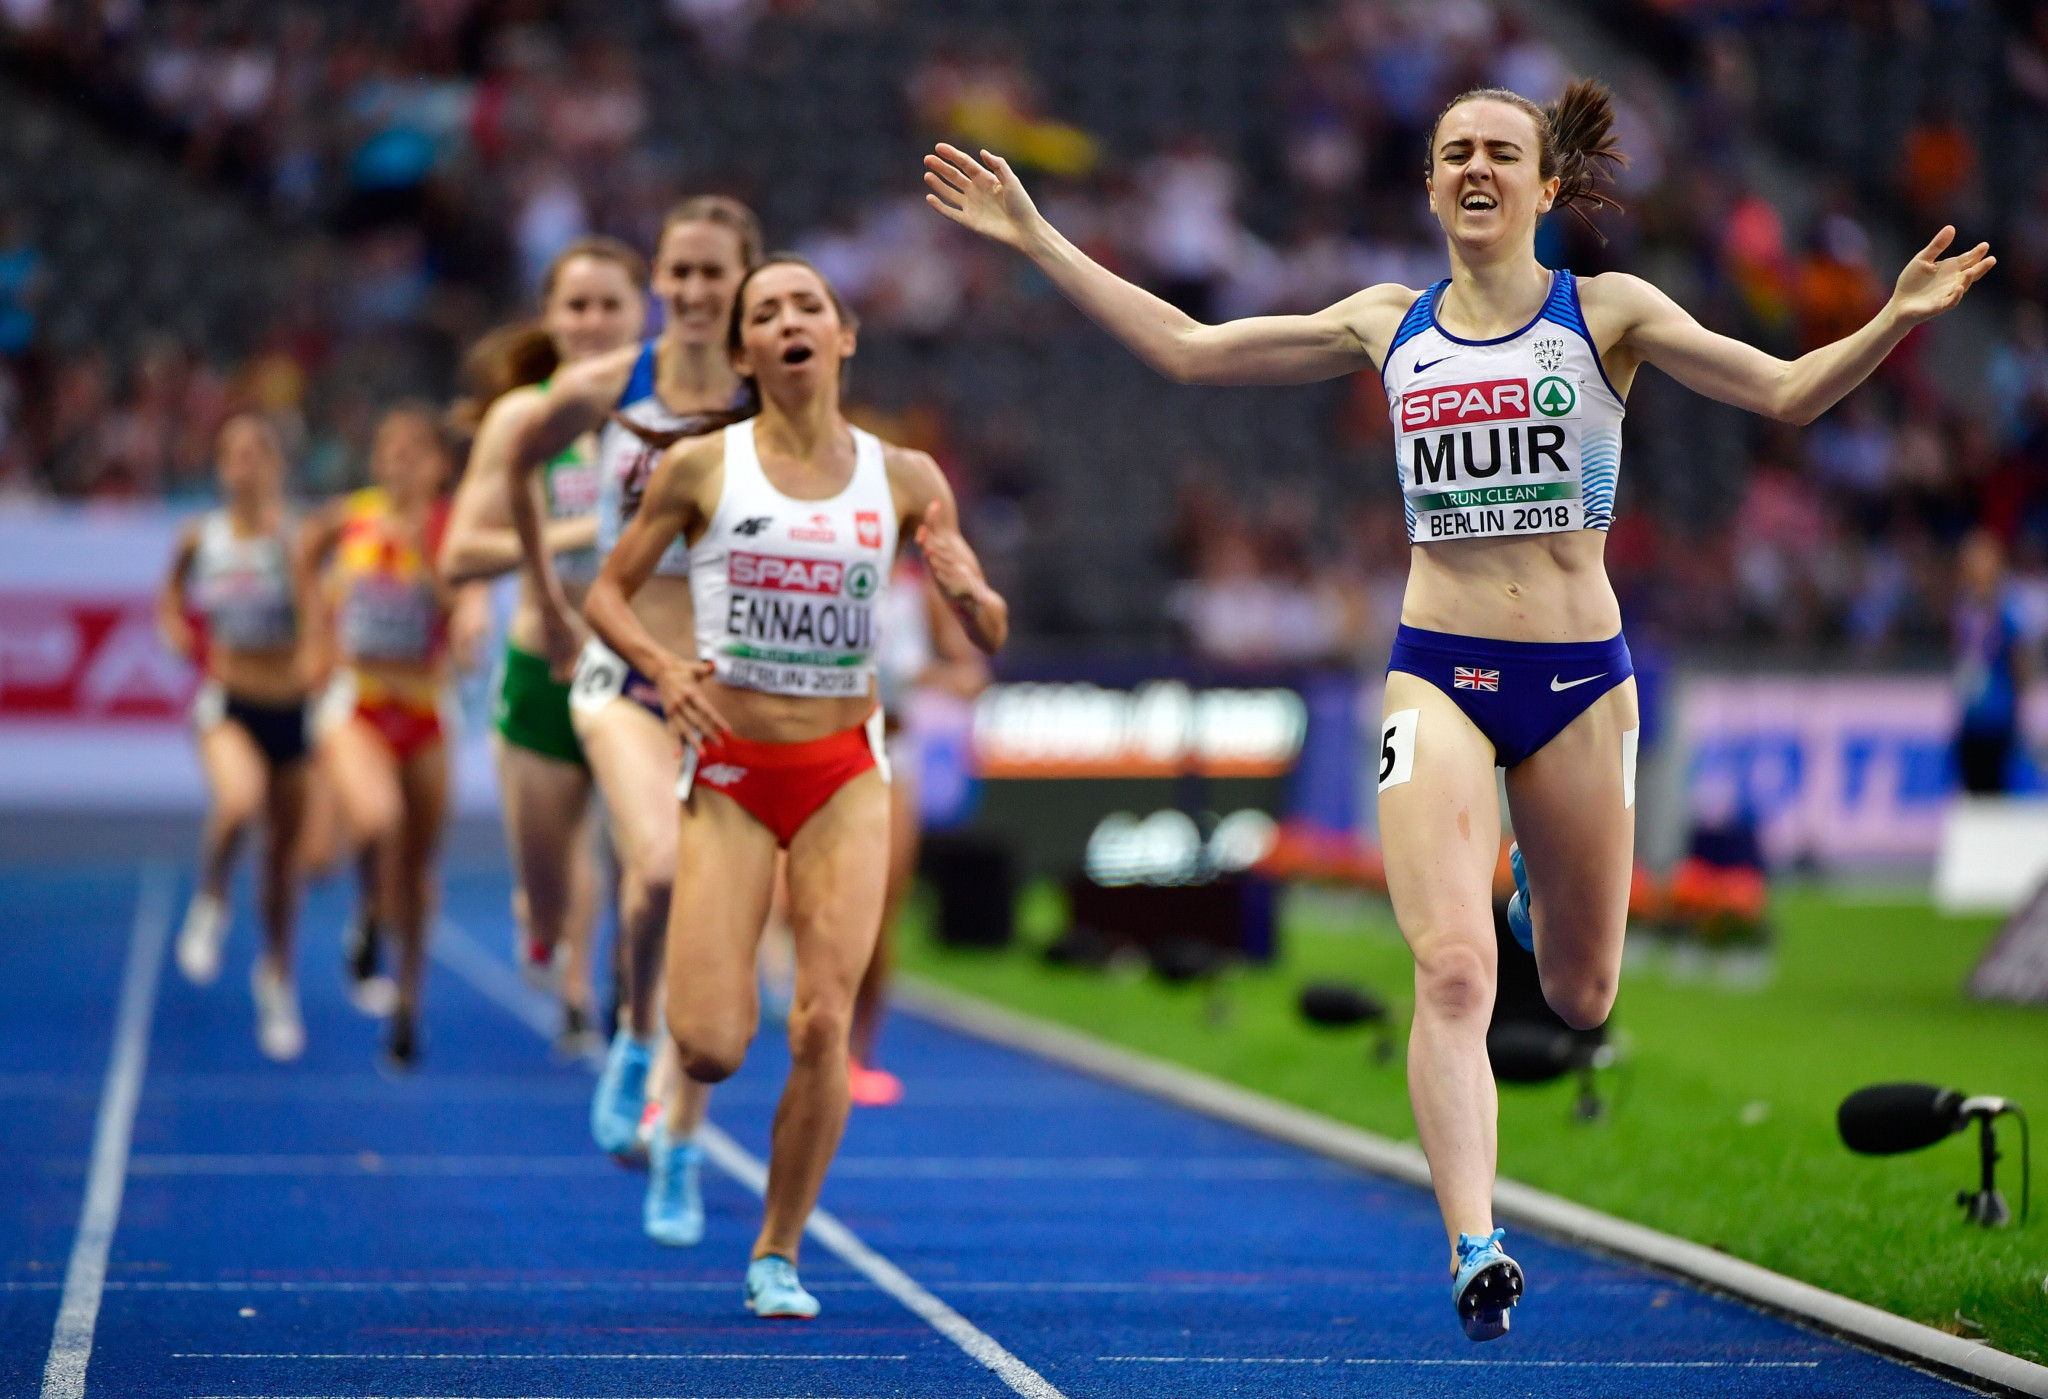 Great Britain's Laura Muir was among the winners on the final night of athletics in Berlin, crossing the line first in the women's 1,500m final ©Getty Images